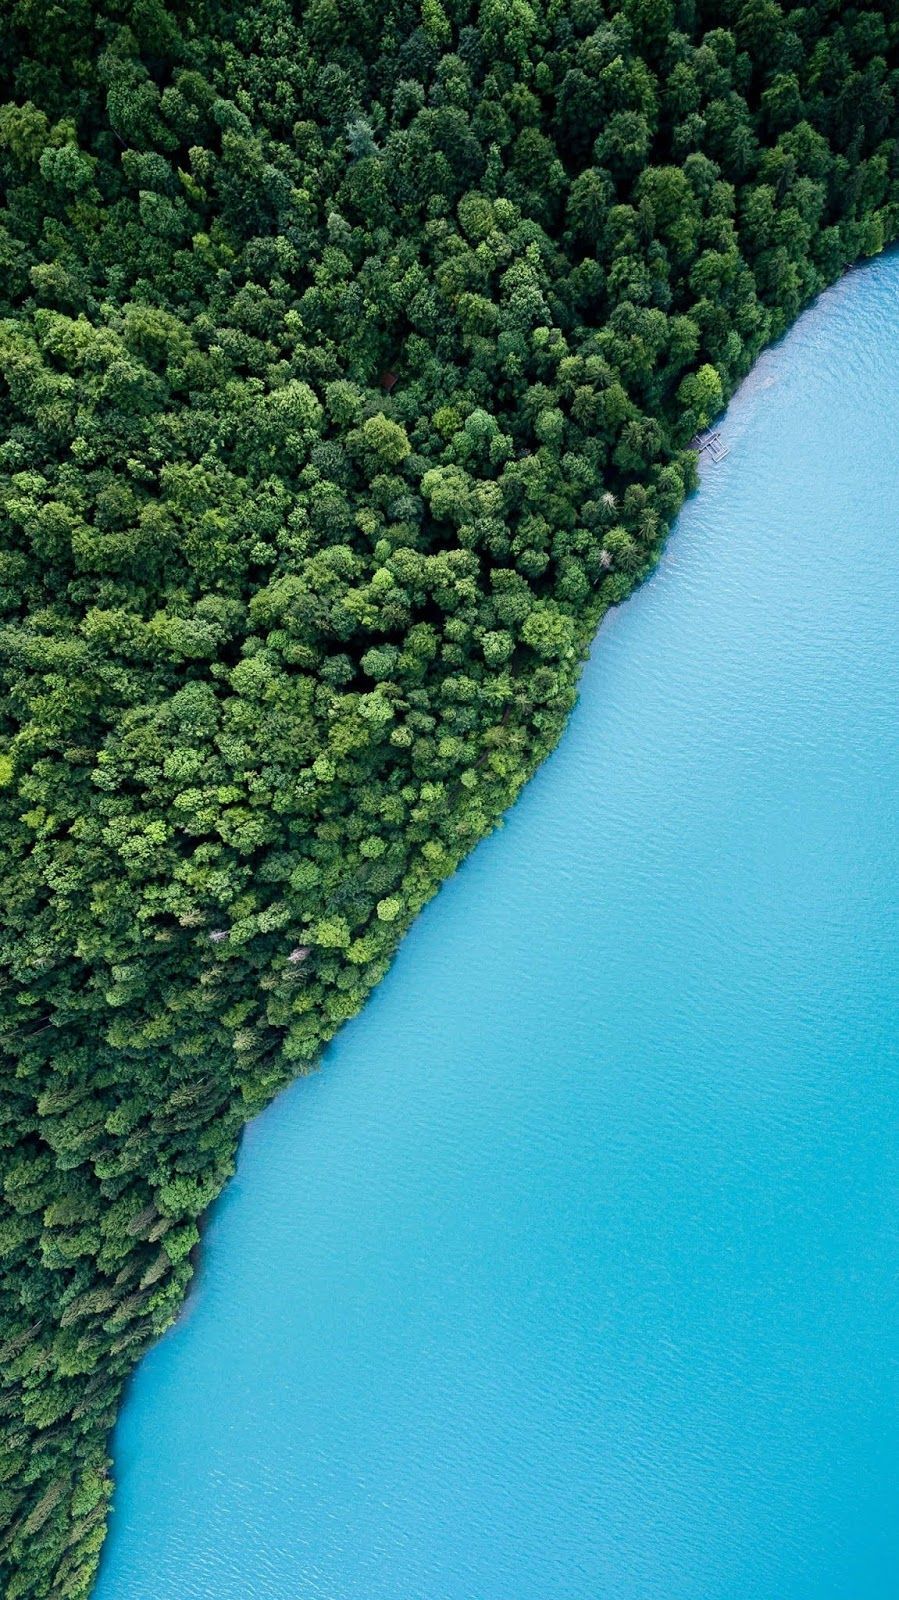 Earth Phone Wallpapers Collection 18 Heroscreen Aerial Photography Drone Nature Photography Landscape Photography